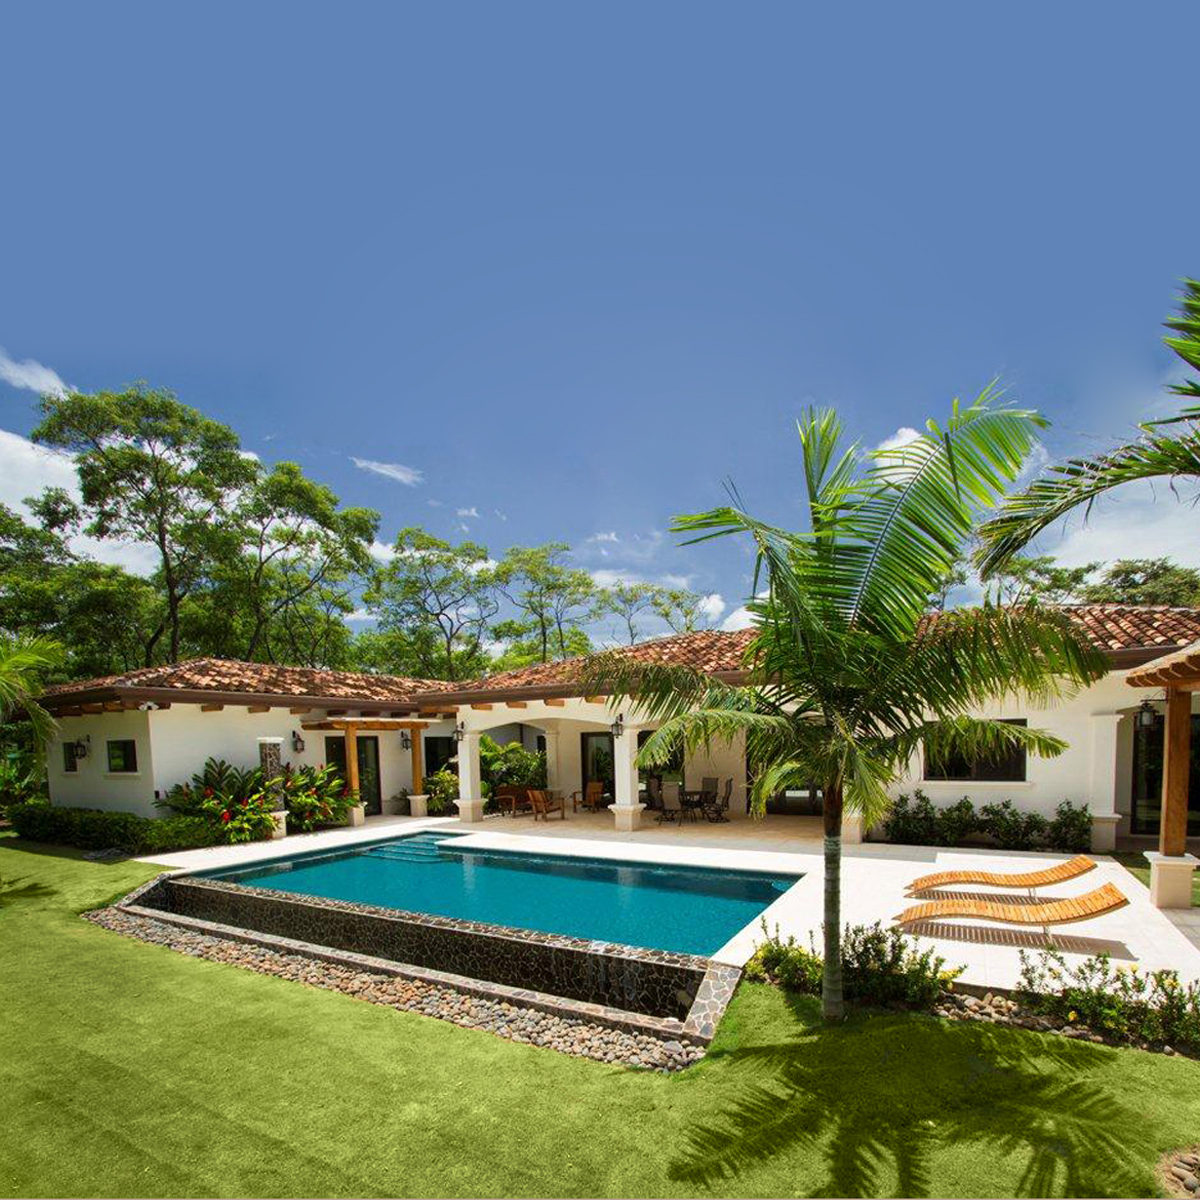 Beach Houses For Sale In Costa Rica: Hacienda Pinilla Costa Rica